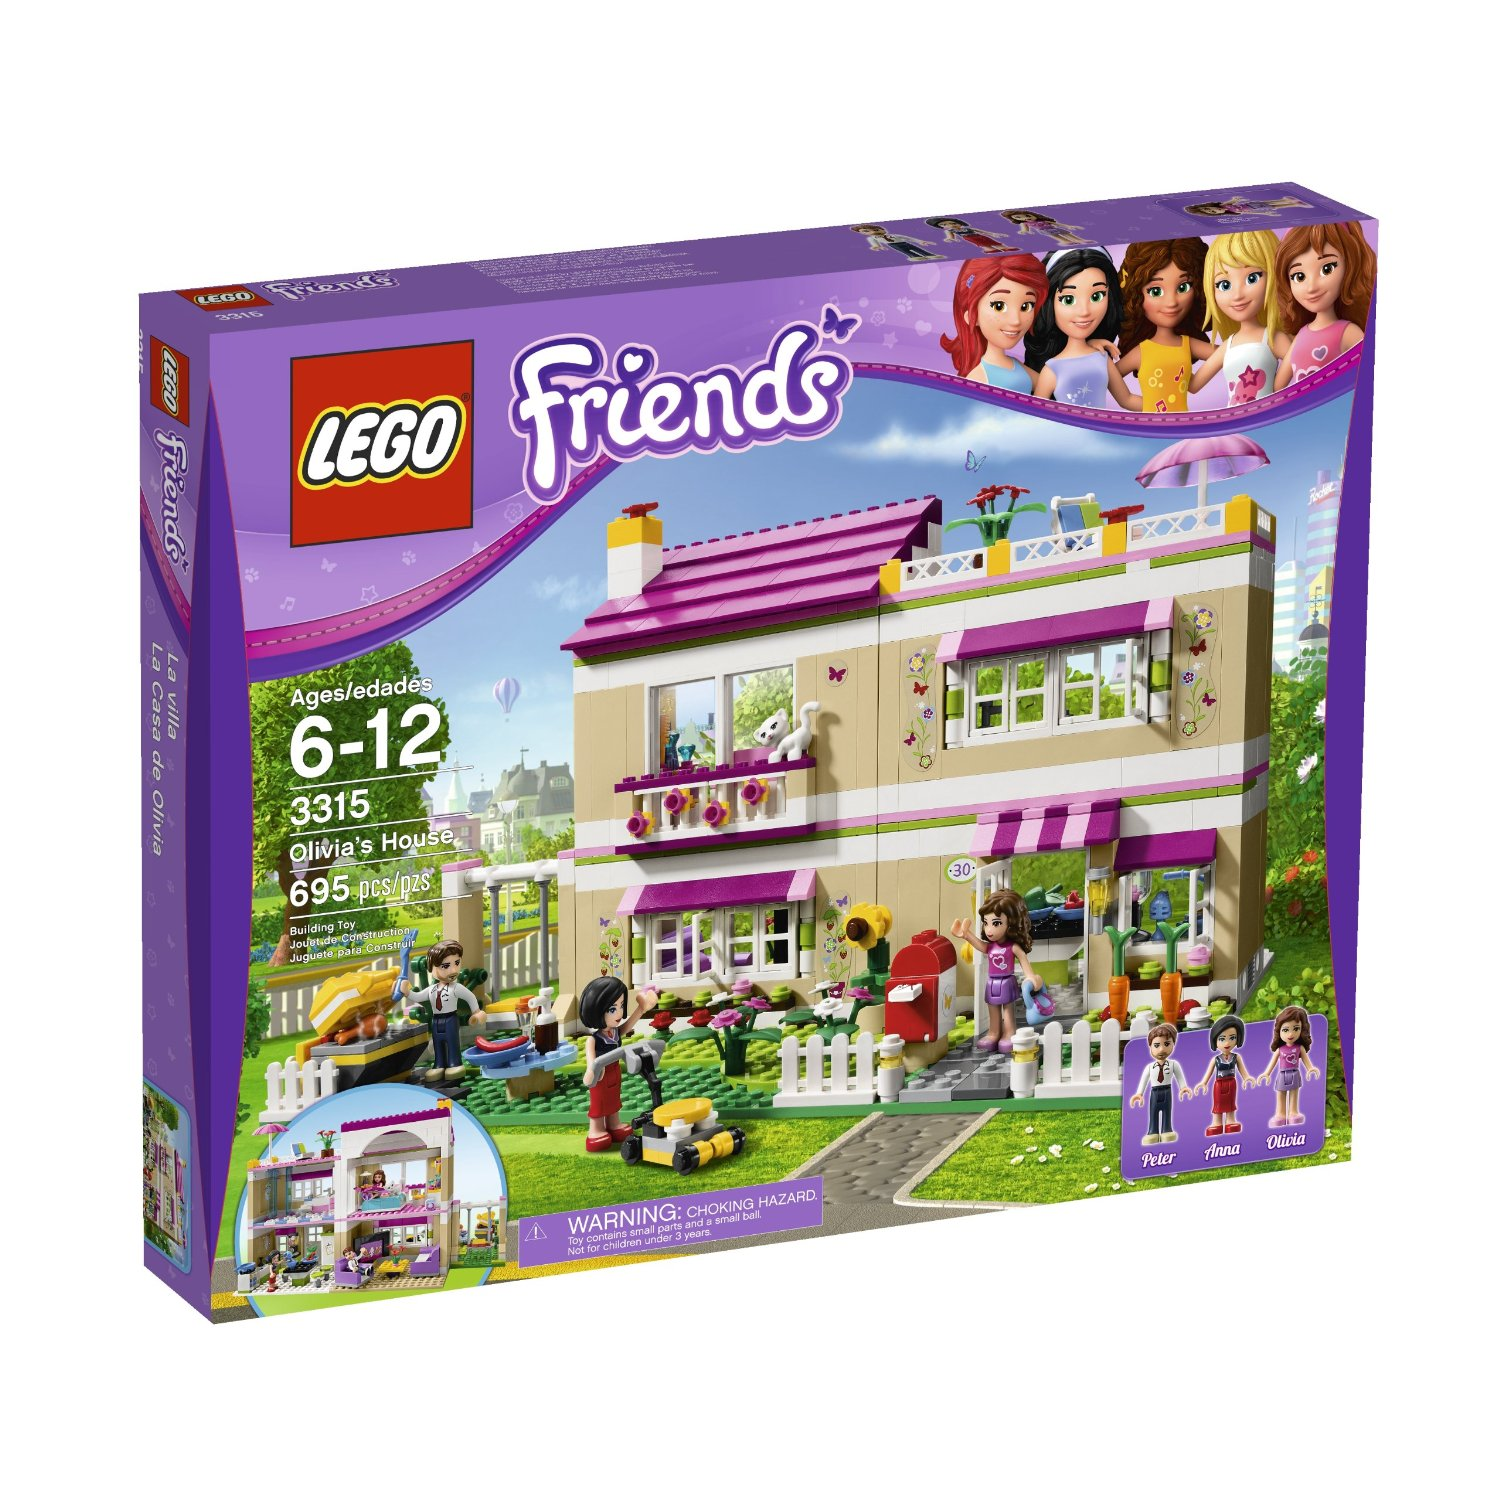 Toys For Friends : More holiday gift ideas for girls ages to everyday savvy